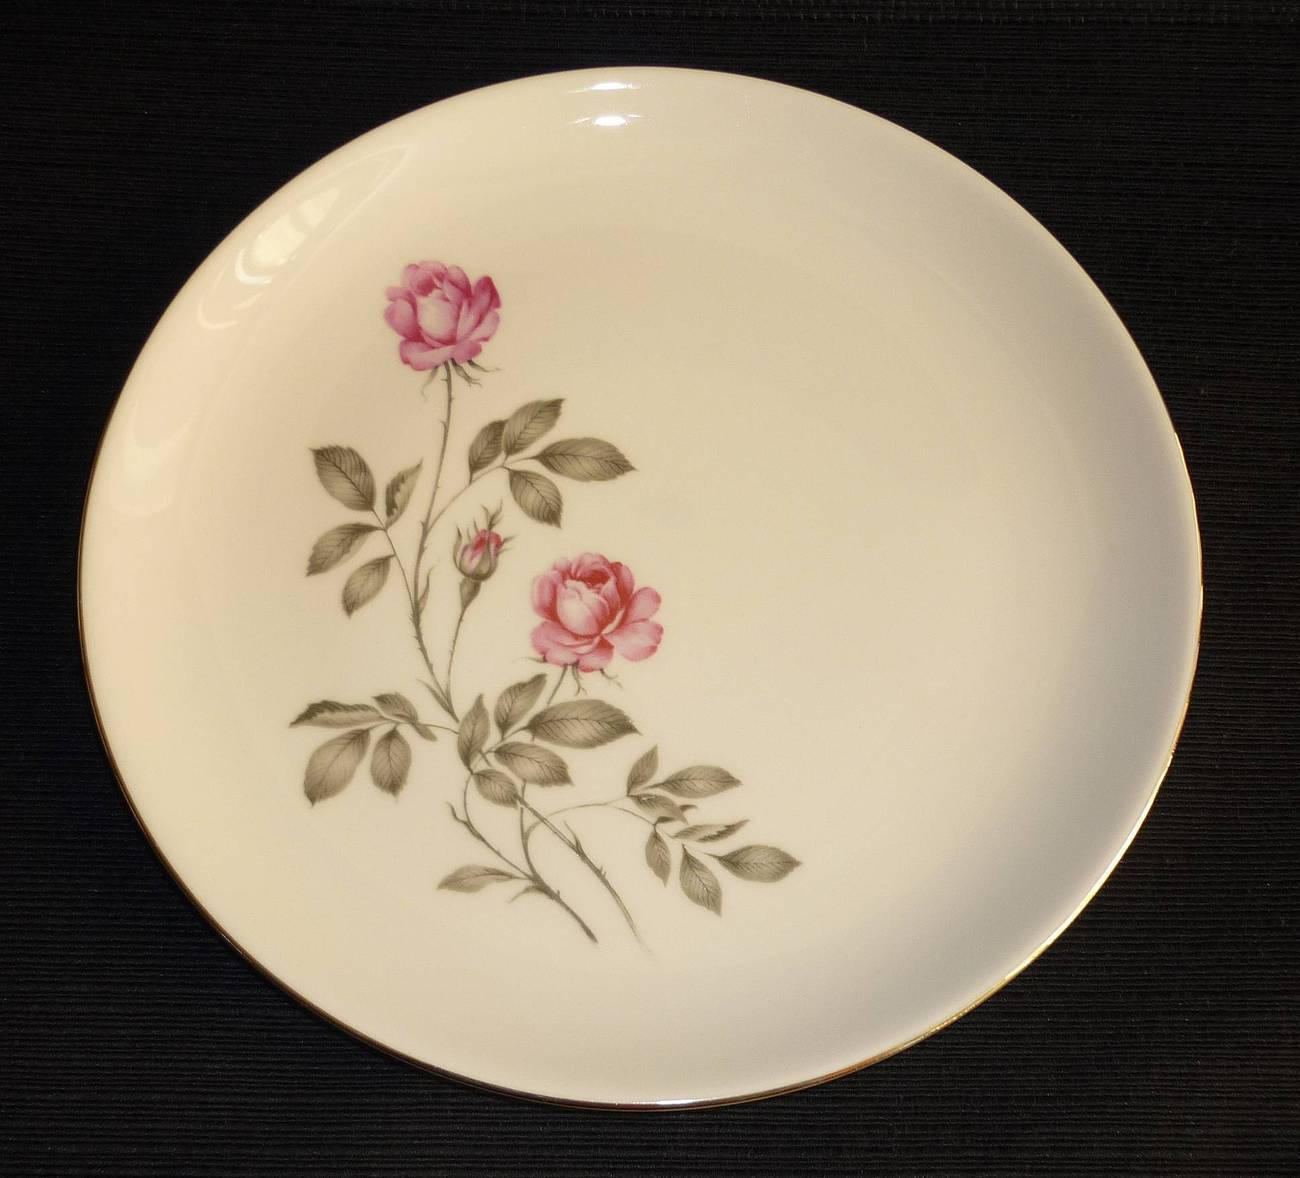 Homer laughlin american rose plate chip 1